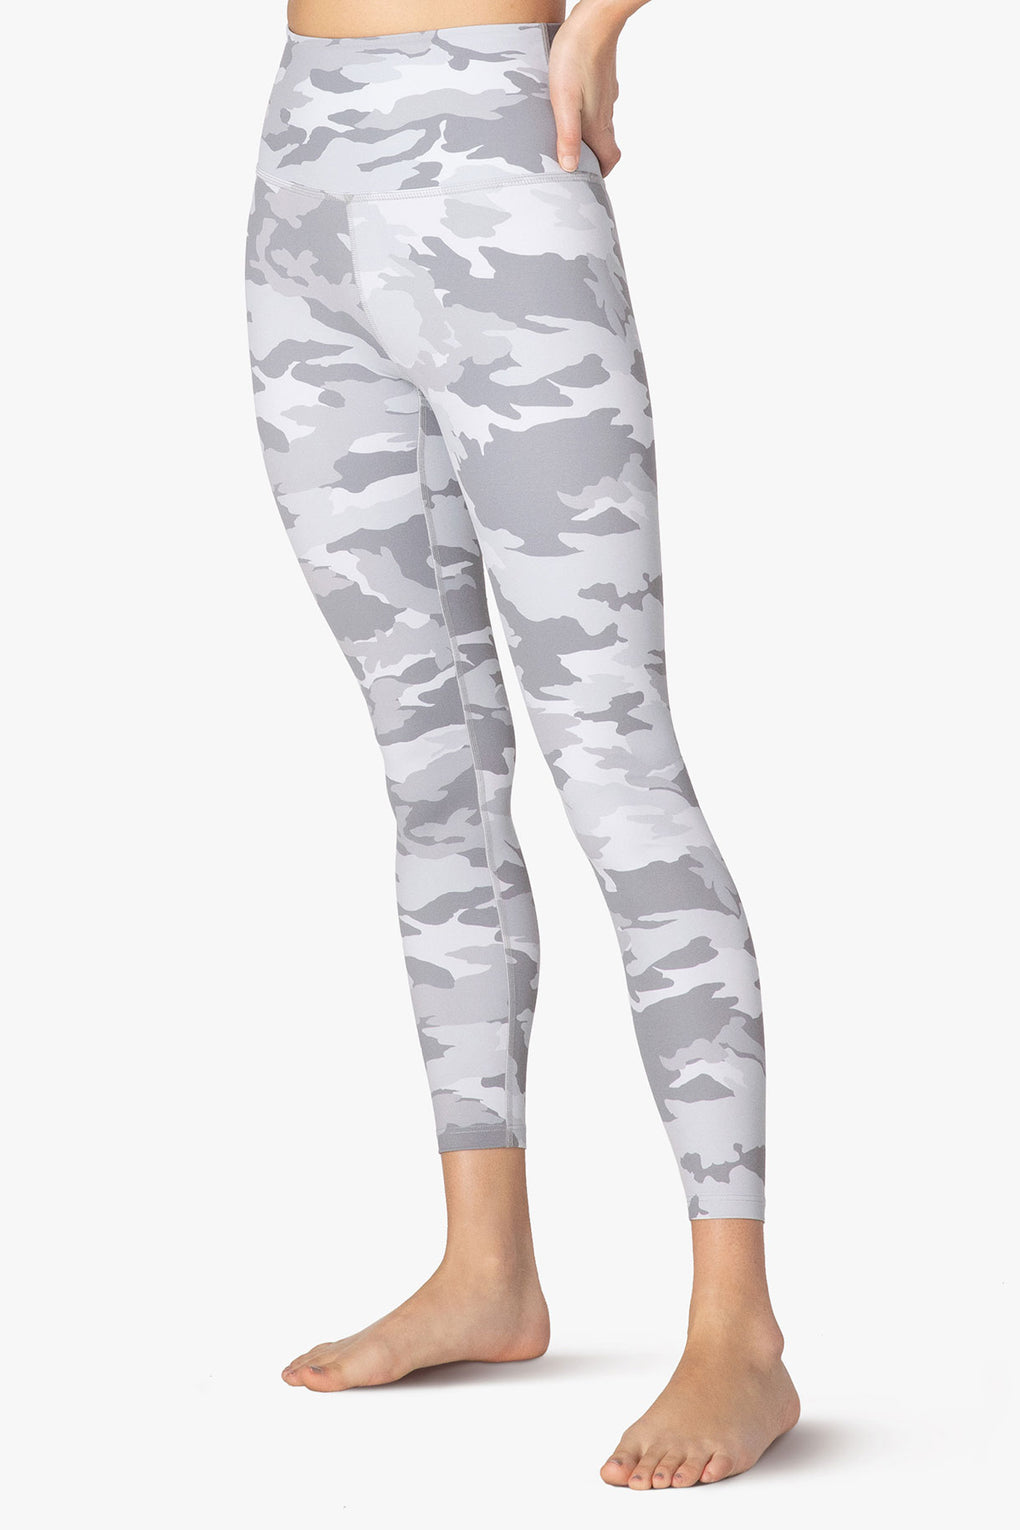 Olympus High Waisted Midi Legging - Kabana Shop